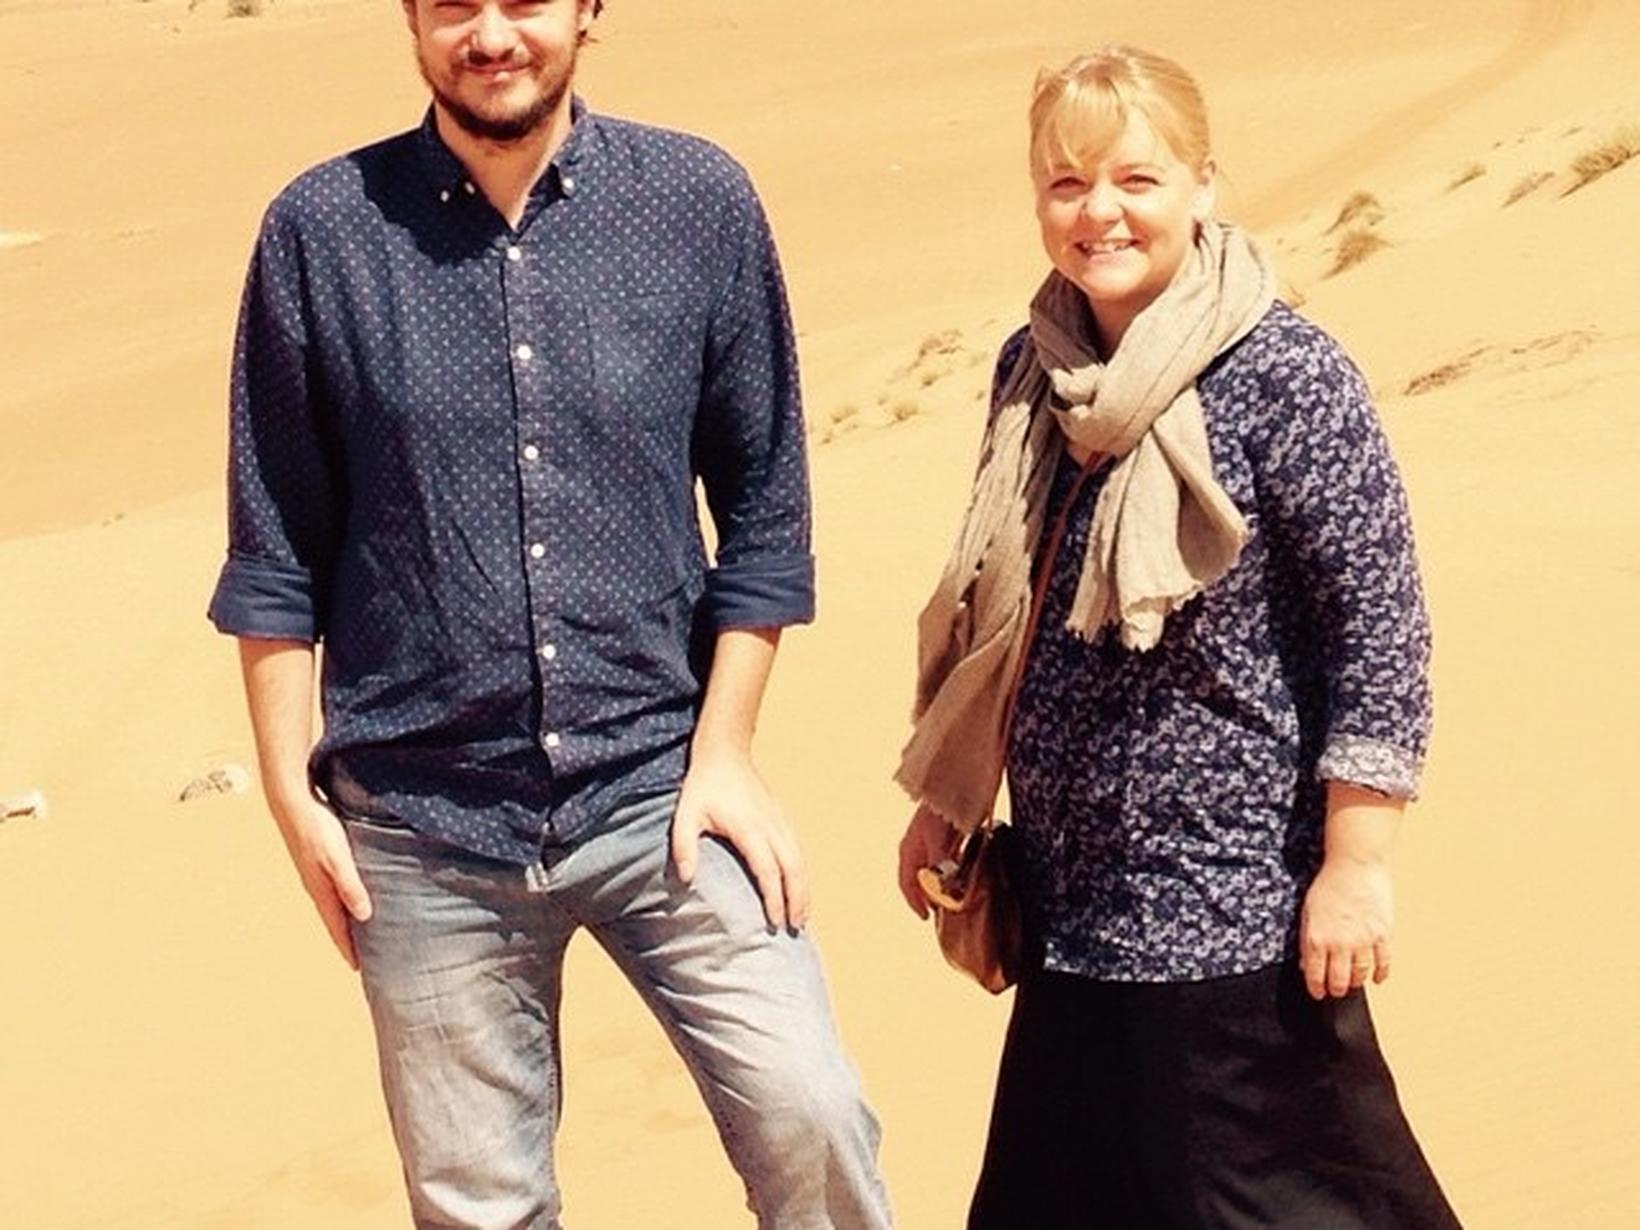 Elizabeth & William from Ibrā', Oman